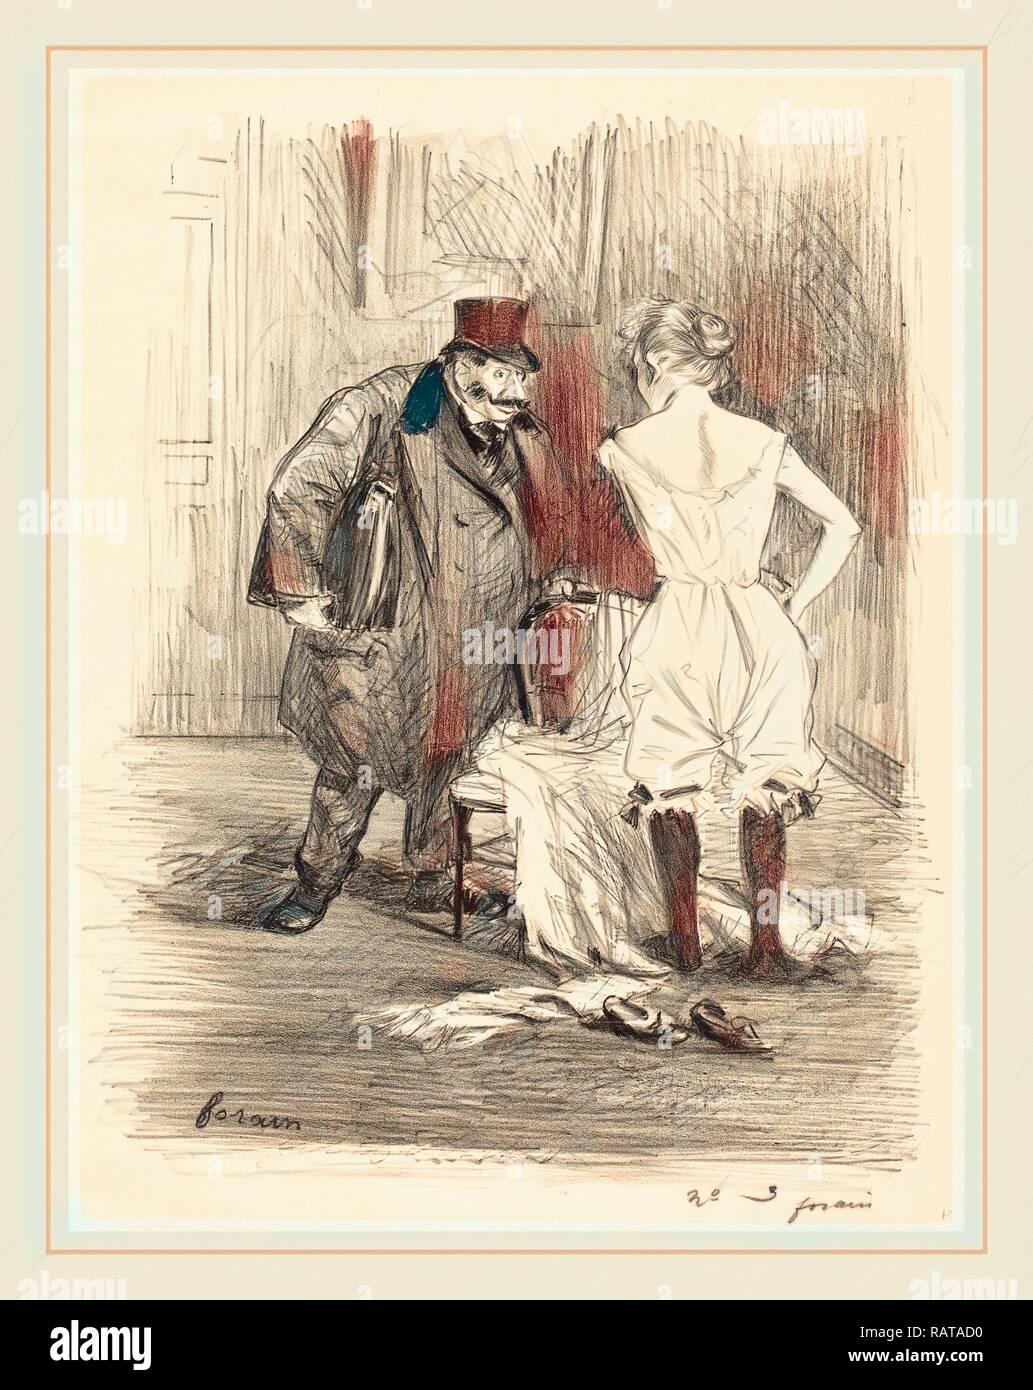 Jean-Louis Forain (French, 1852-1931), A Seizure, c. 1891, lithograph. Reimagined by Gibon. Classic art with a modern reimagined - Stock Image